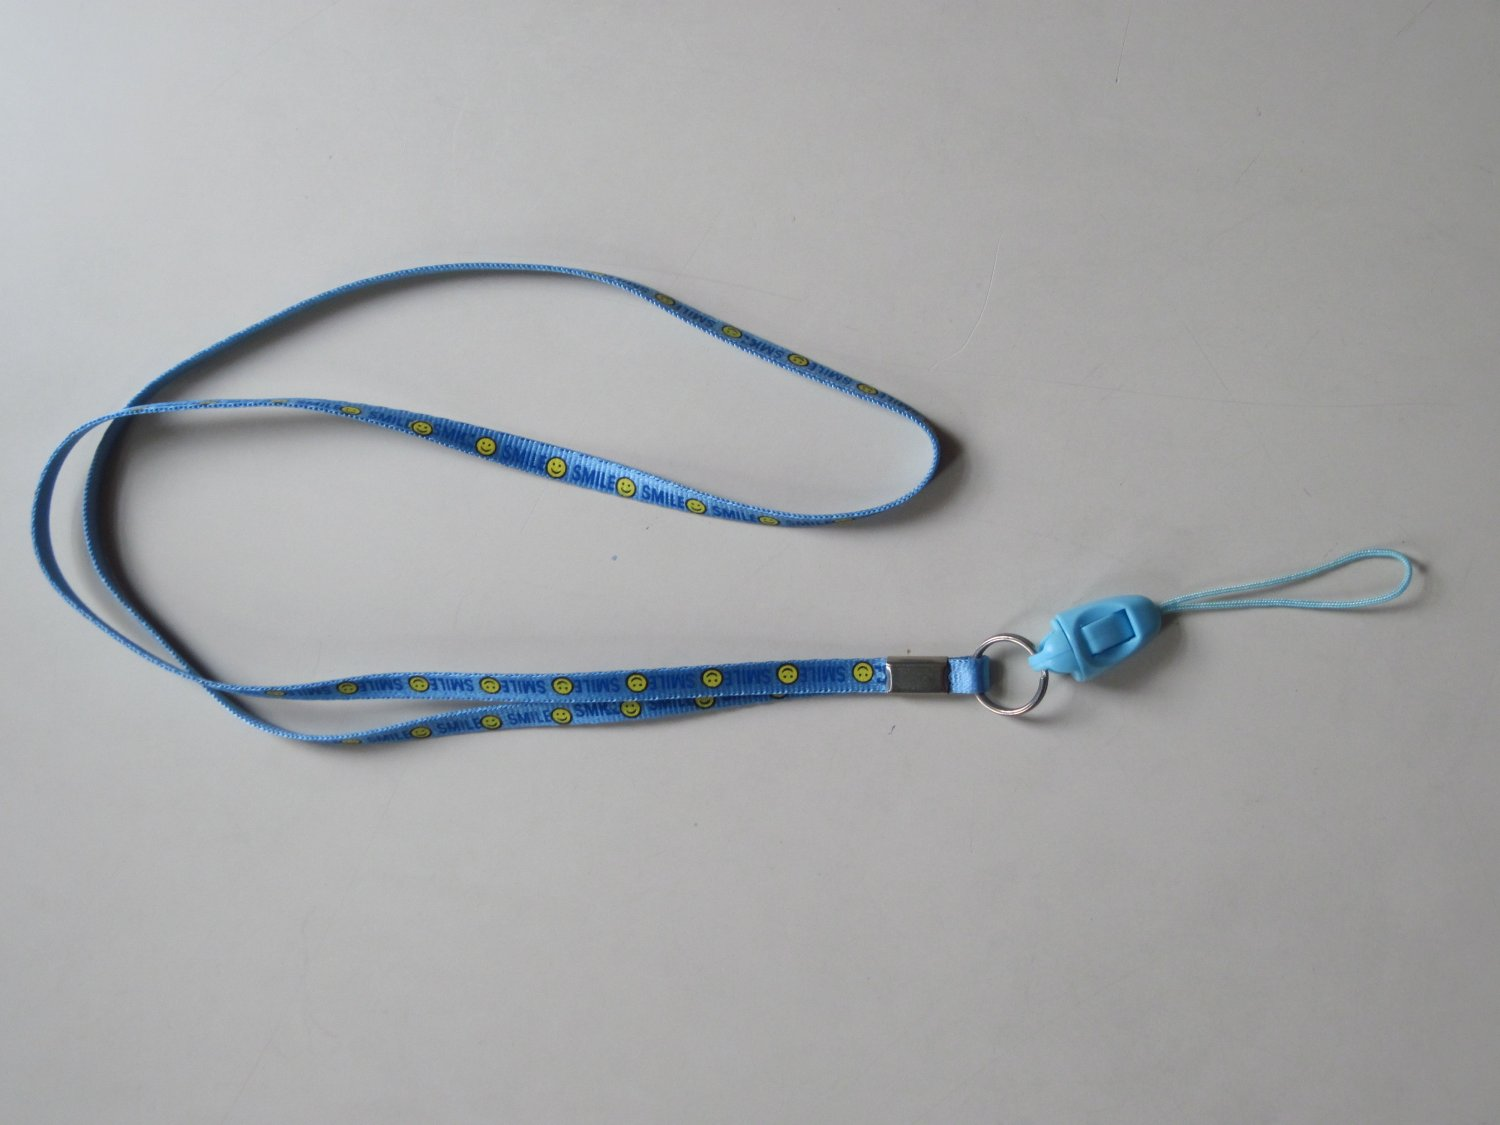 NEW Cell Phone / ID holder neck straps (Blue color SMILEY print)